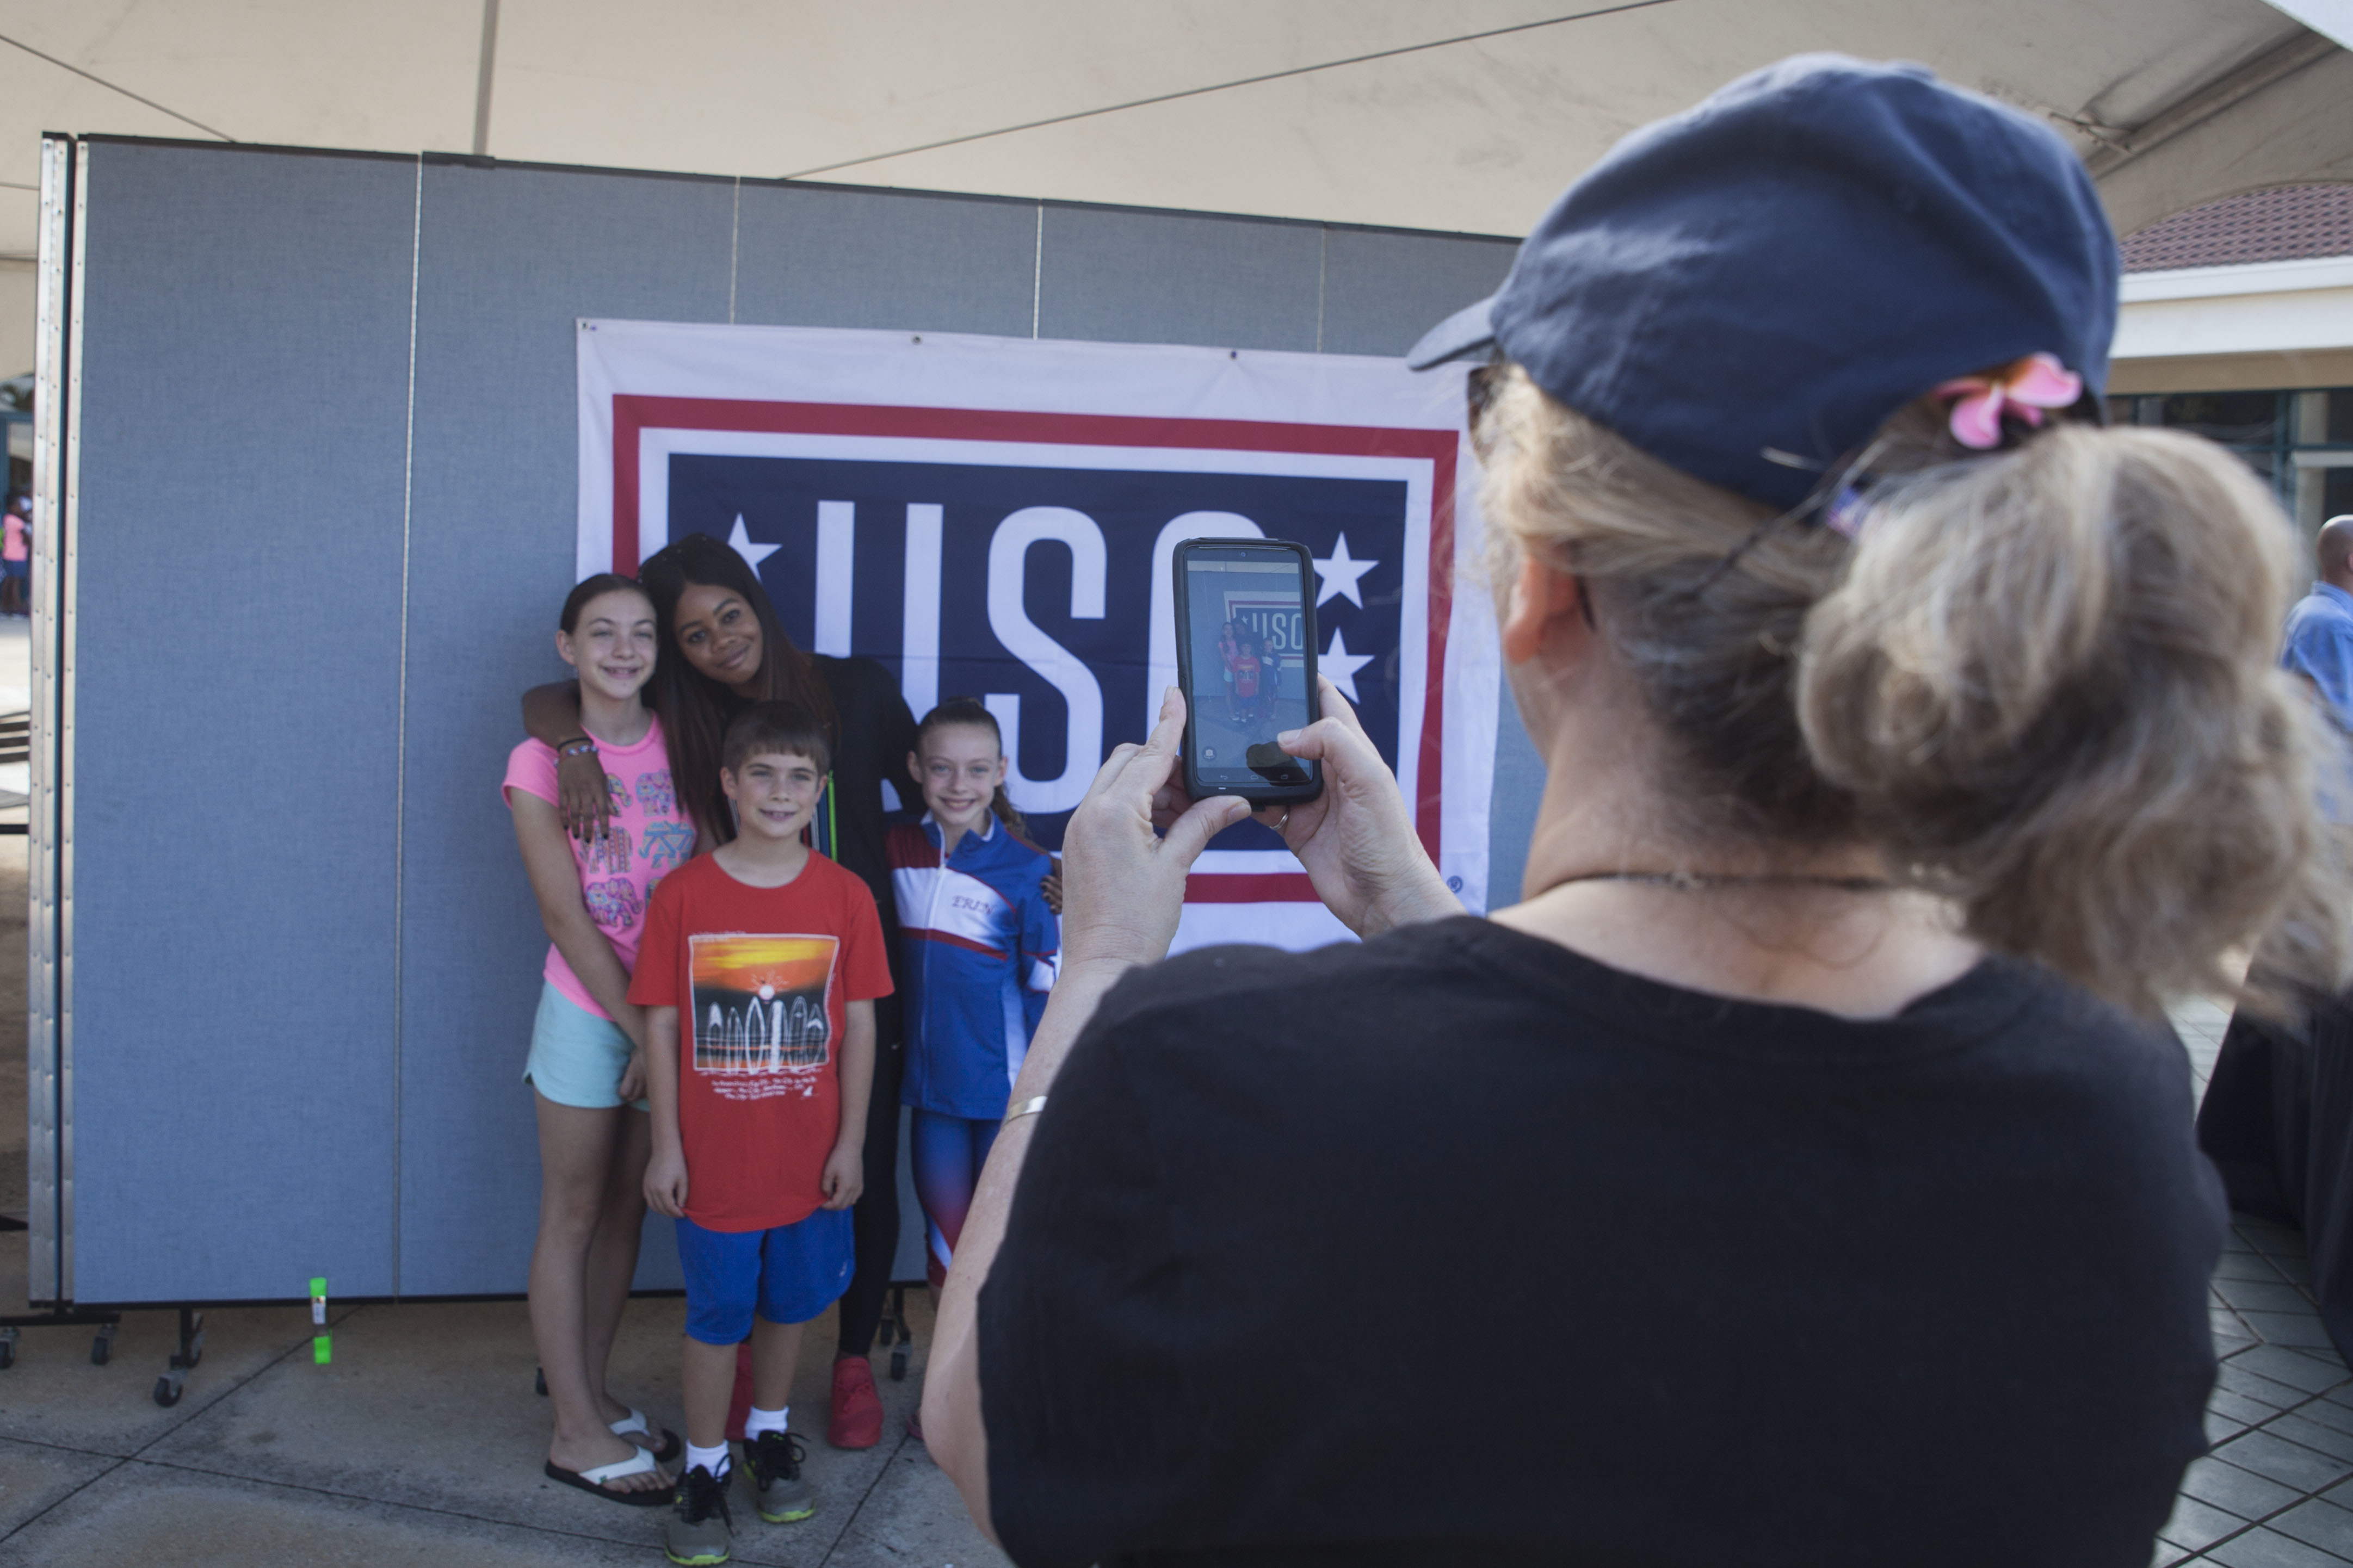 Olympic medalist visits mcbh for final uso stop tour marine corps download hi res photo m4hsunfo